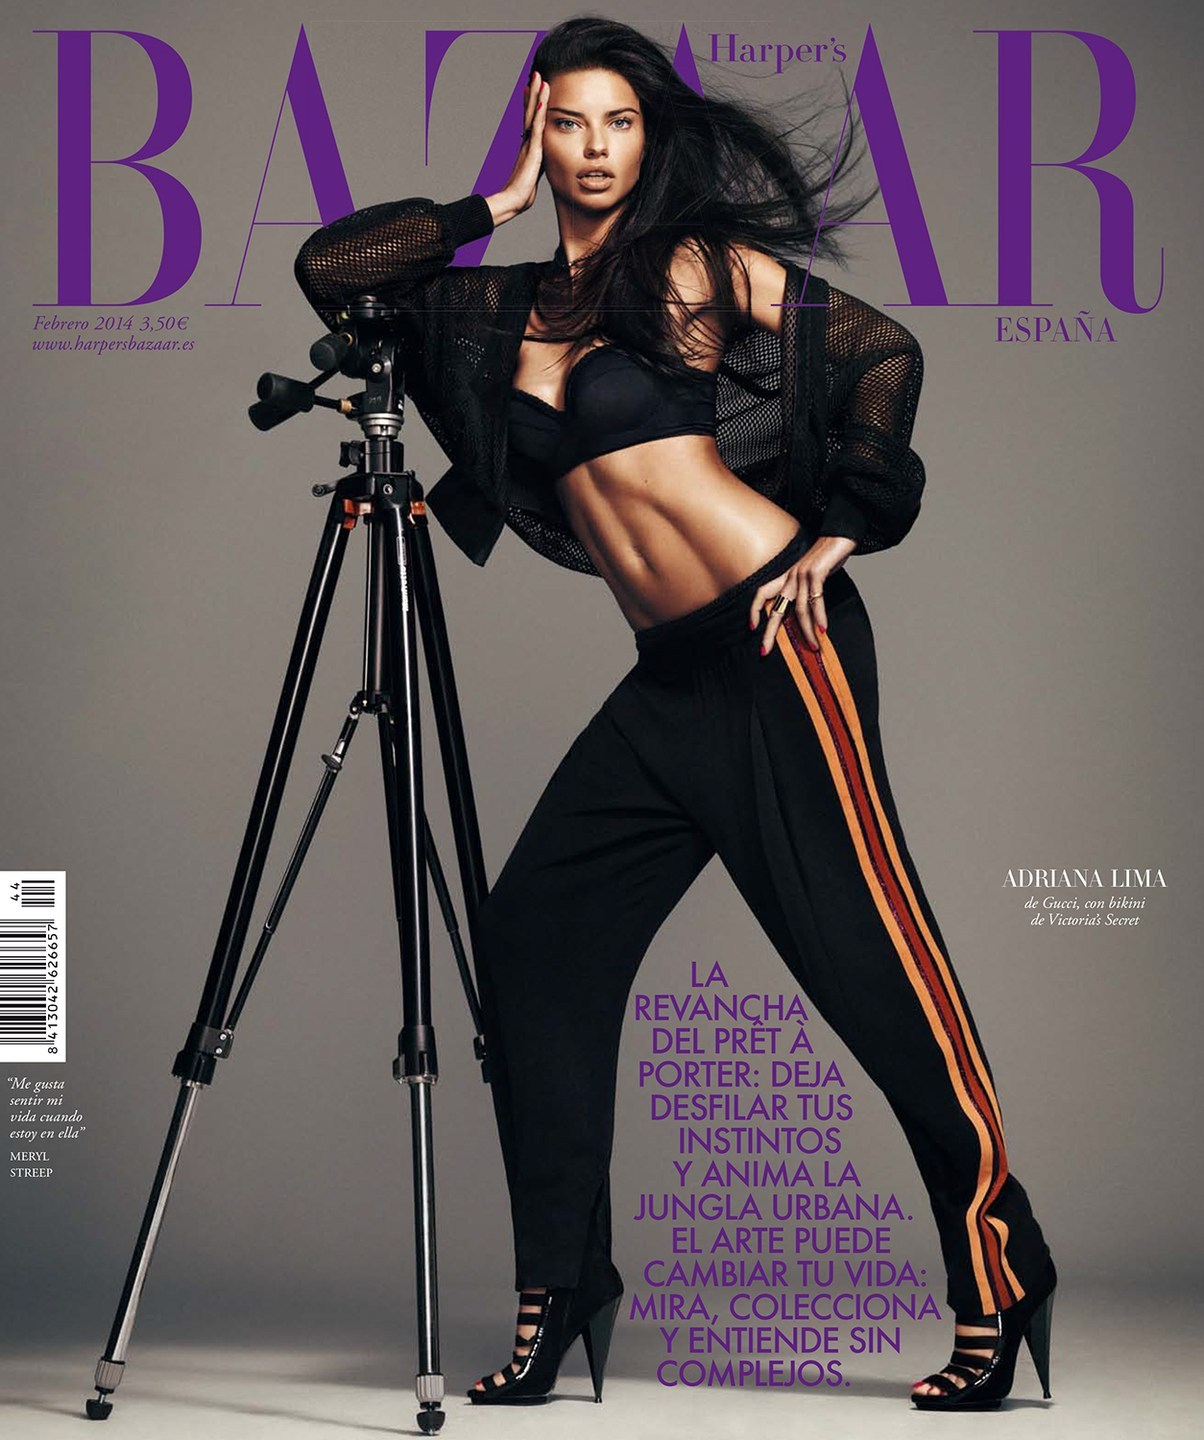 Adriana Lima Gets Our Pulses Racing In Harper's Bazaar!